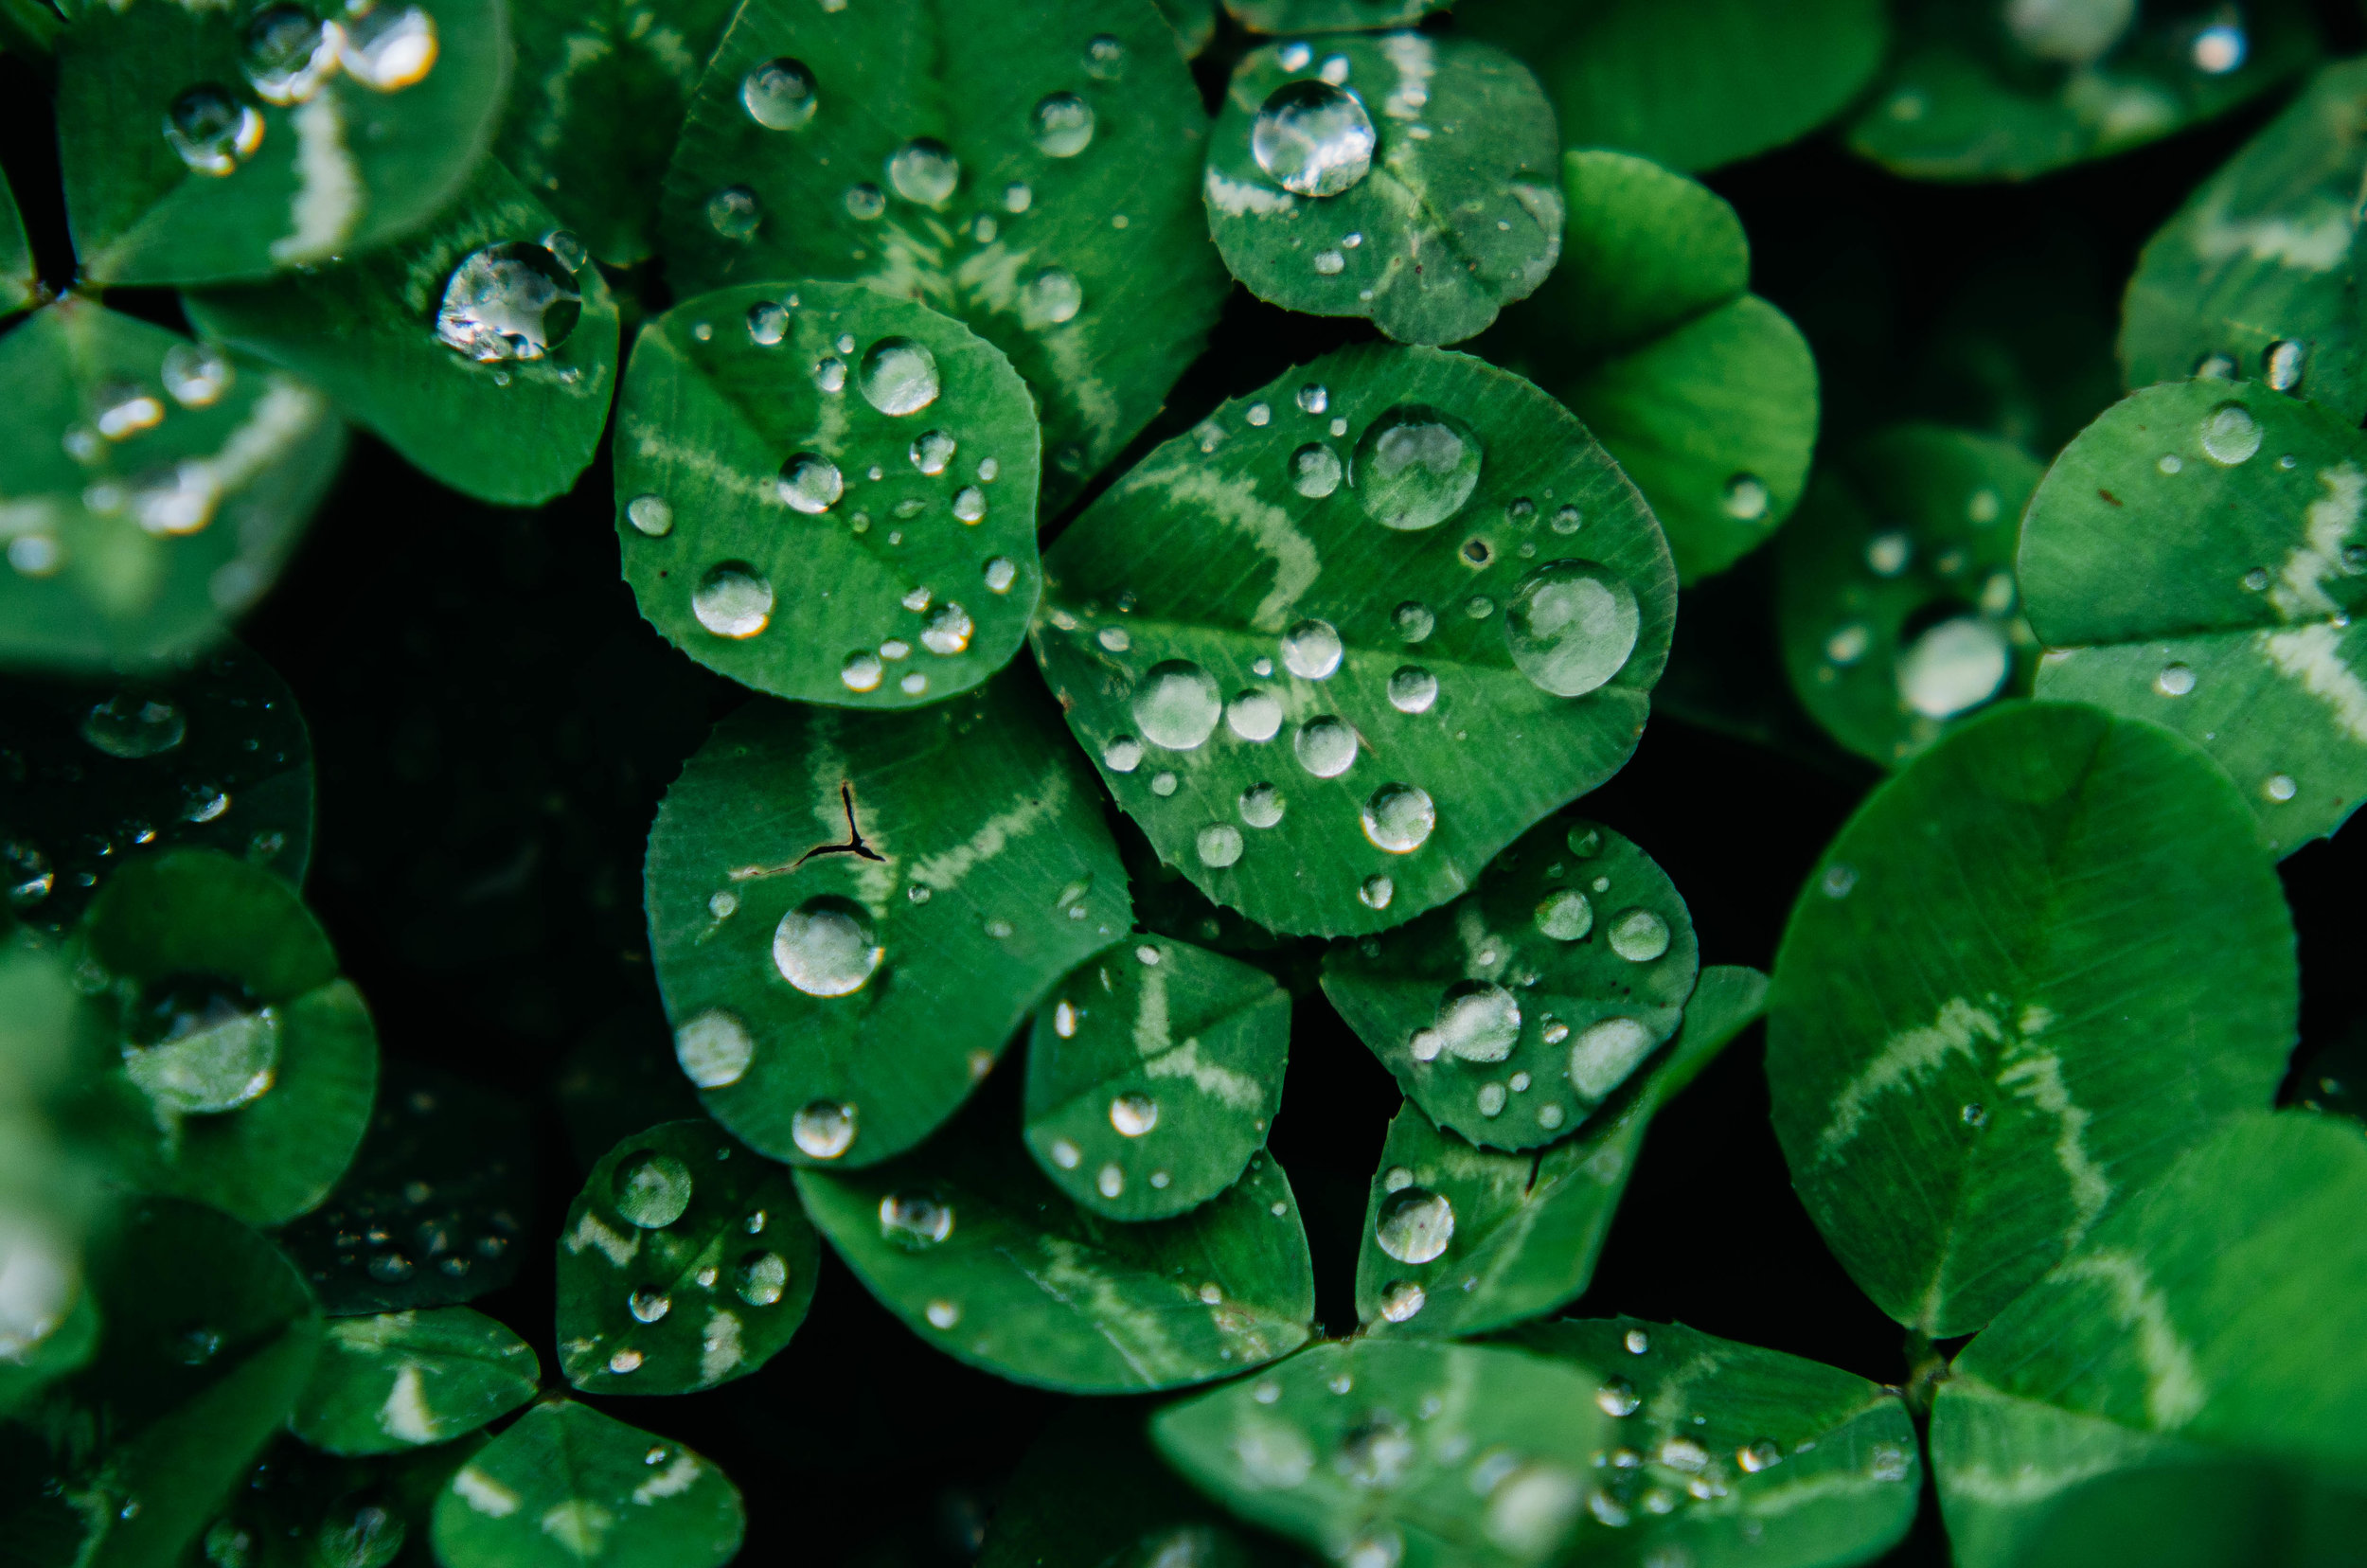 samantha whitford photography atx phototgrapher texas nature water droplets (13).jpg